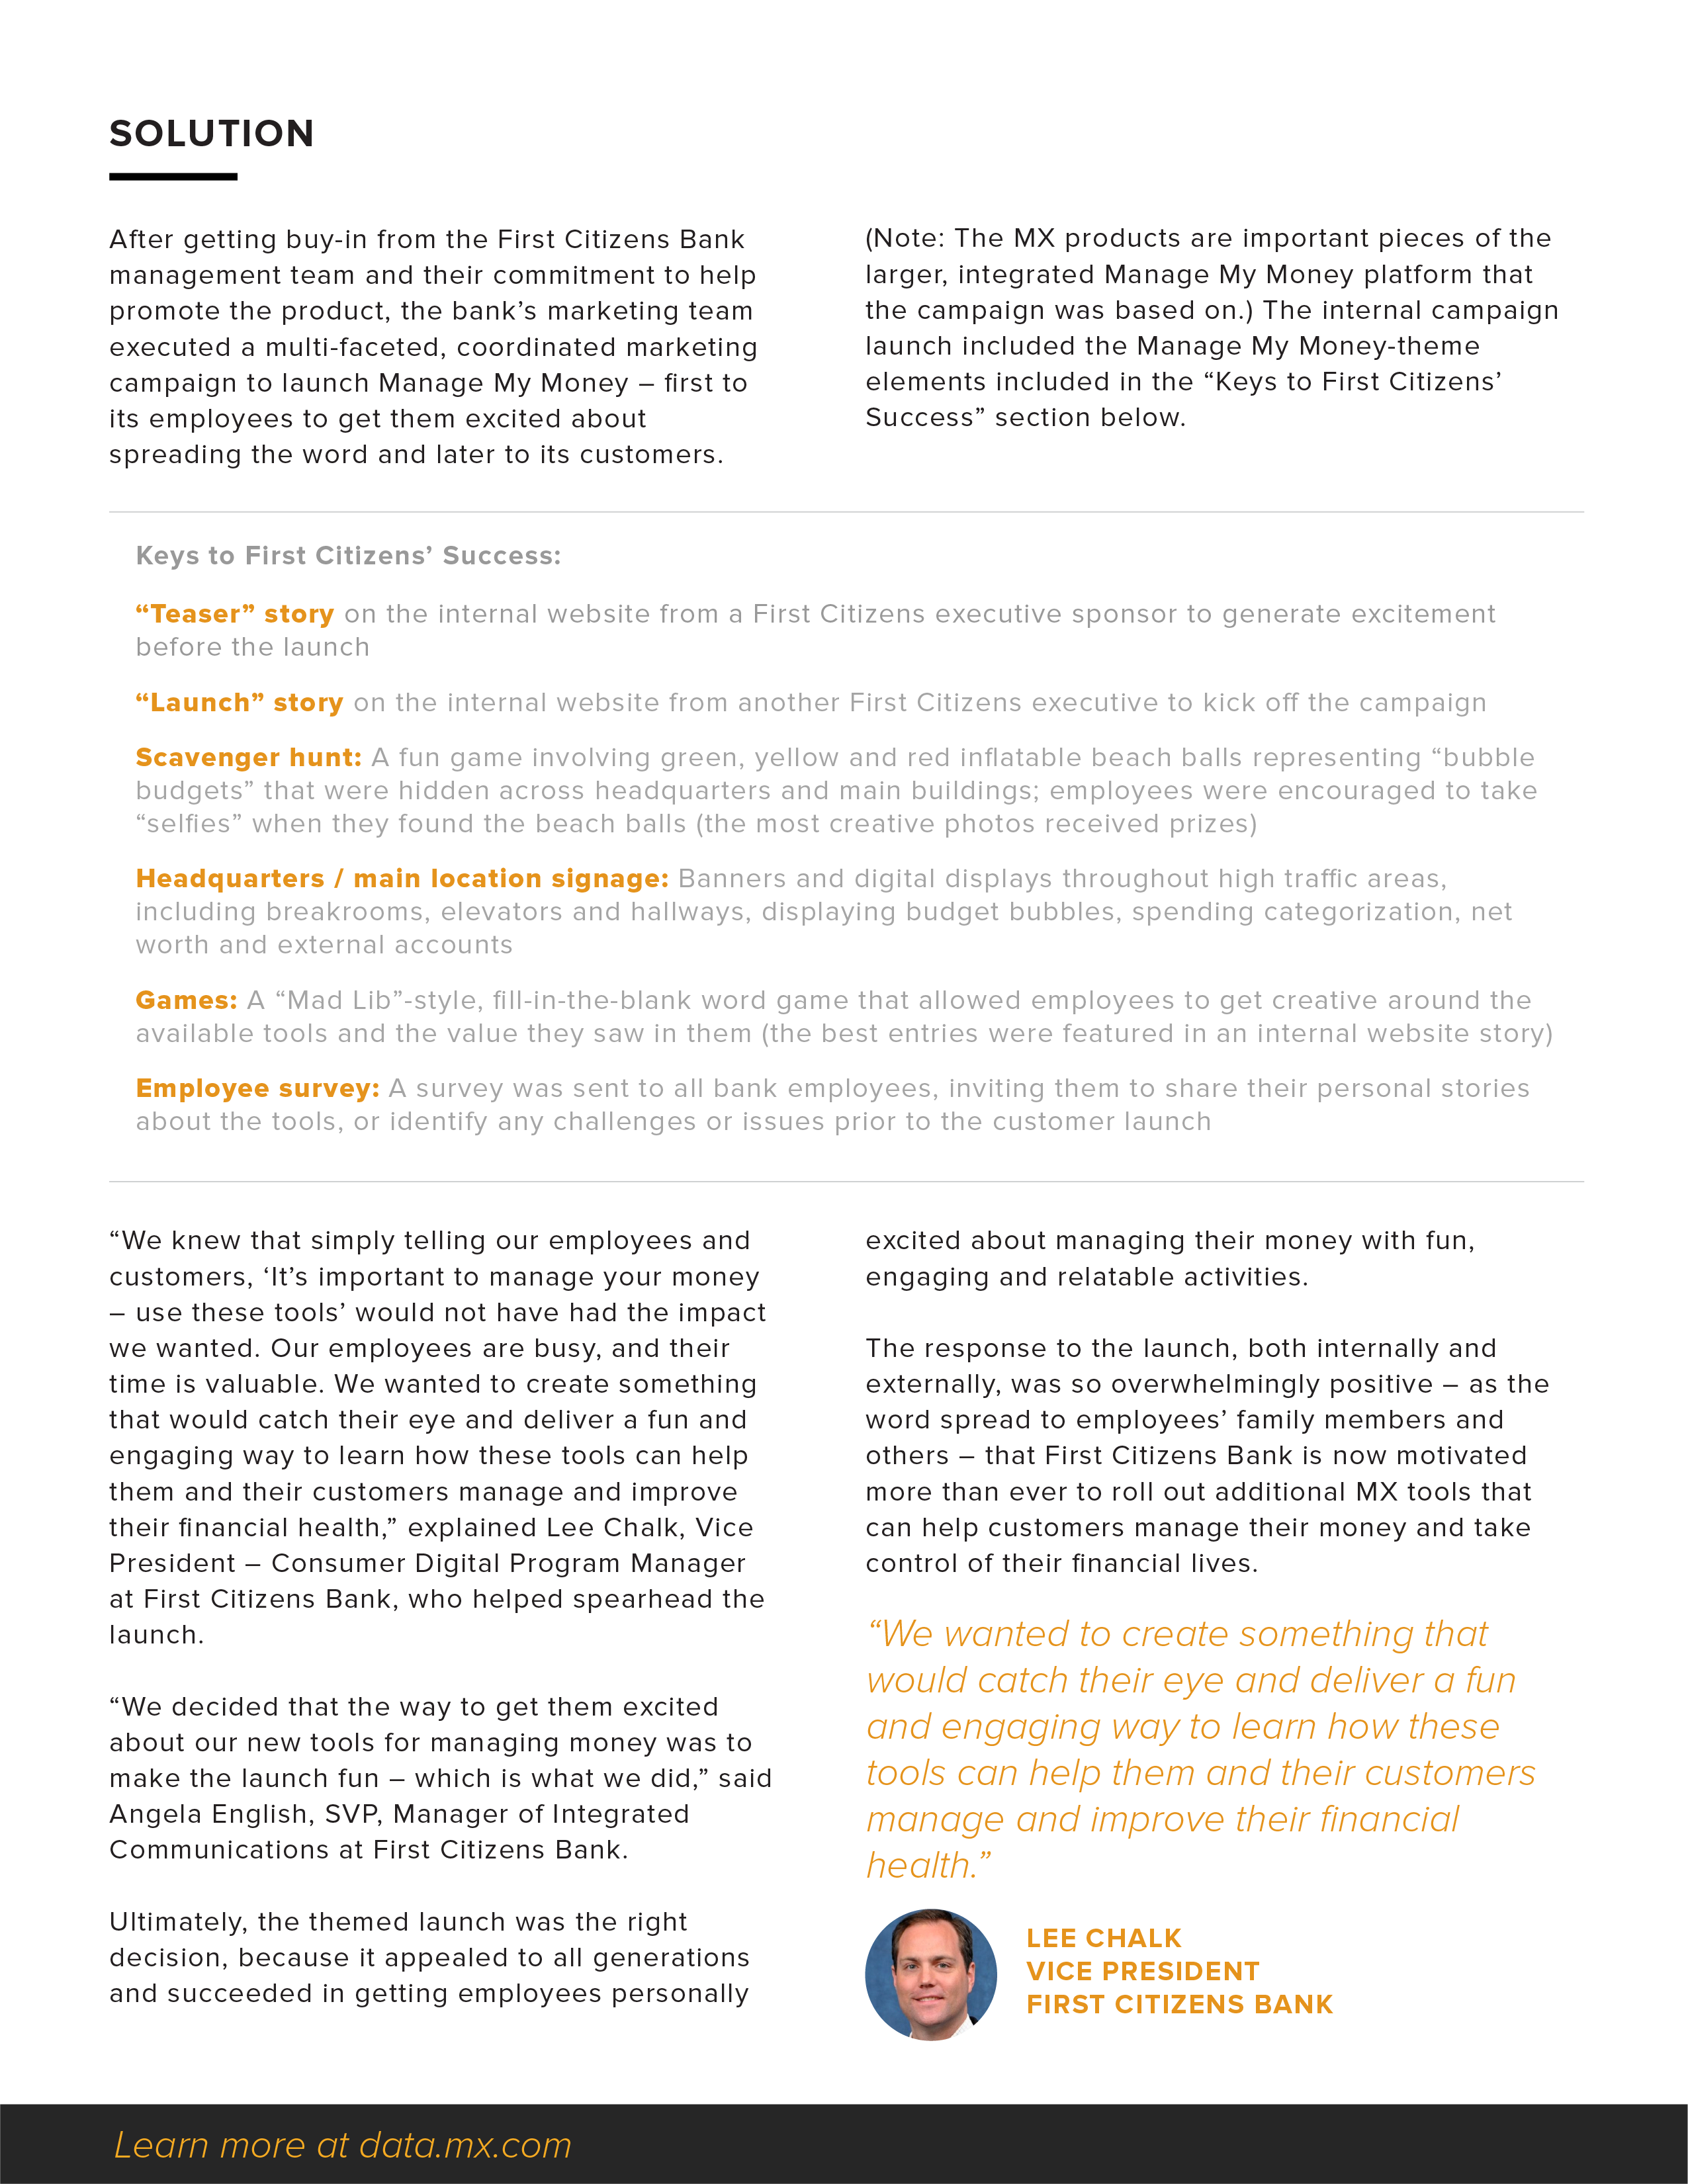 First Citizens Bank case study_page image 2